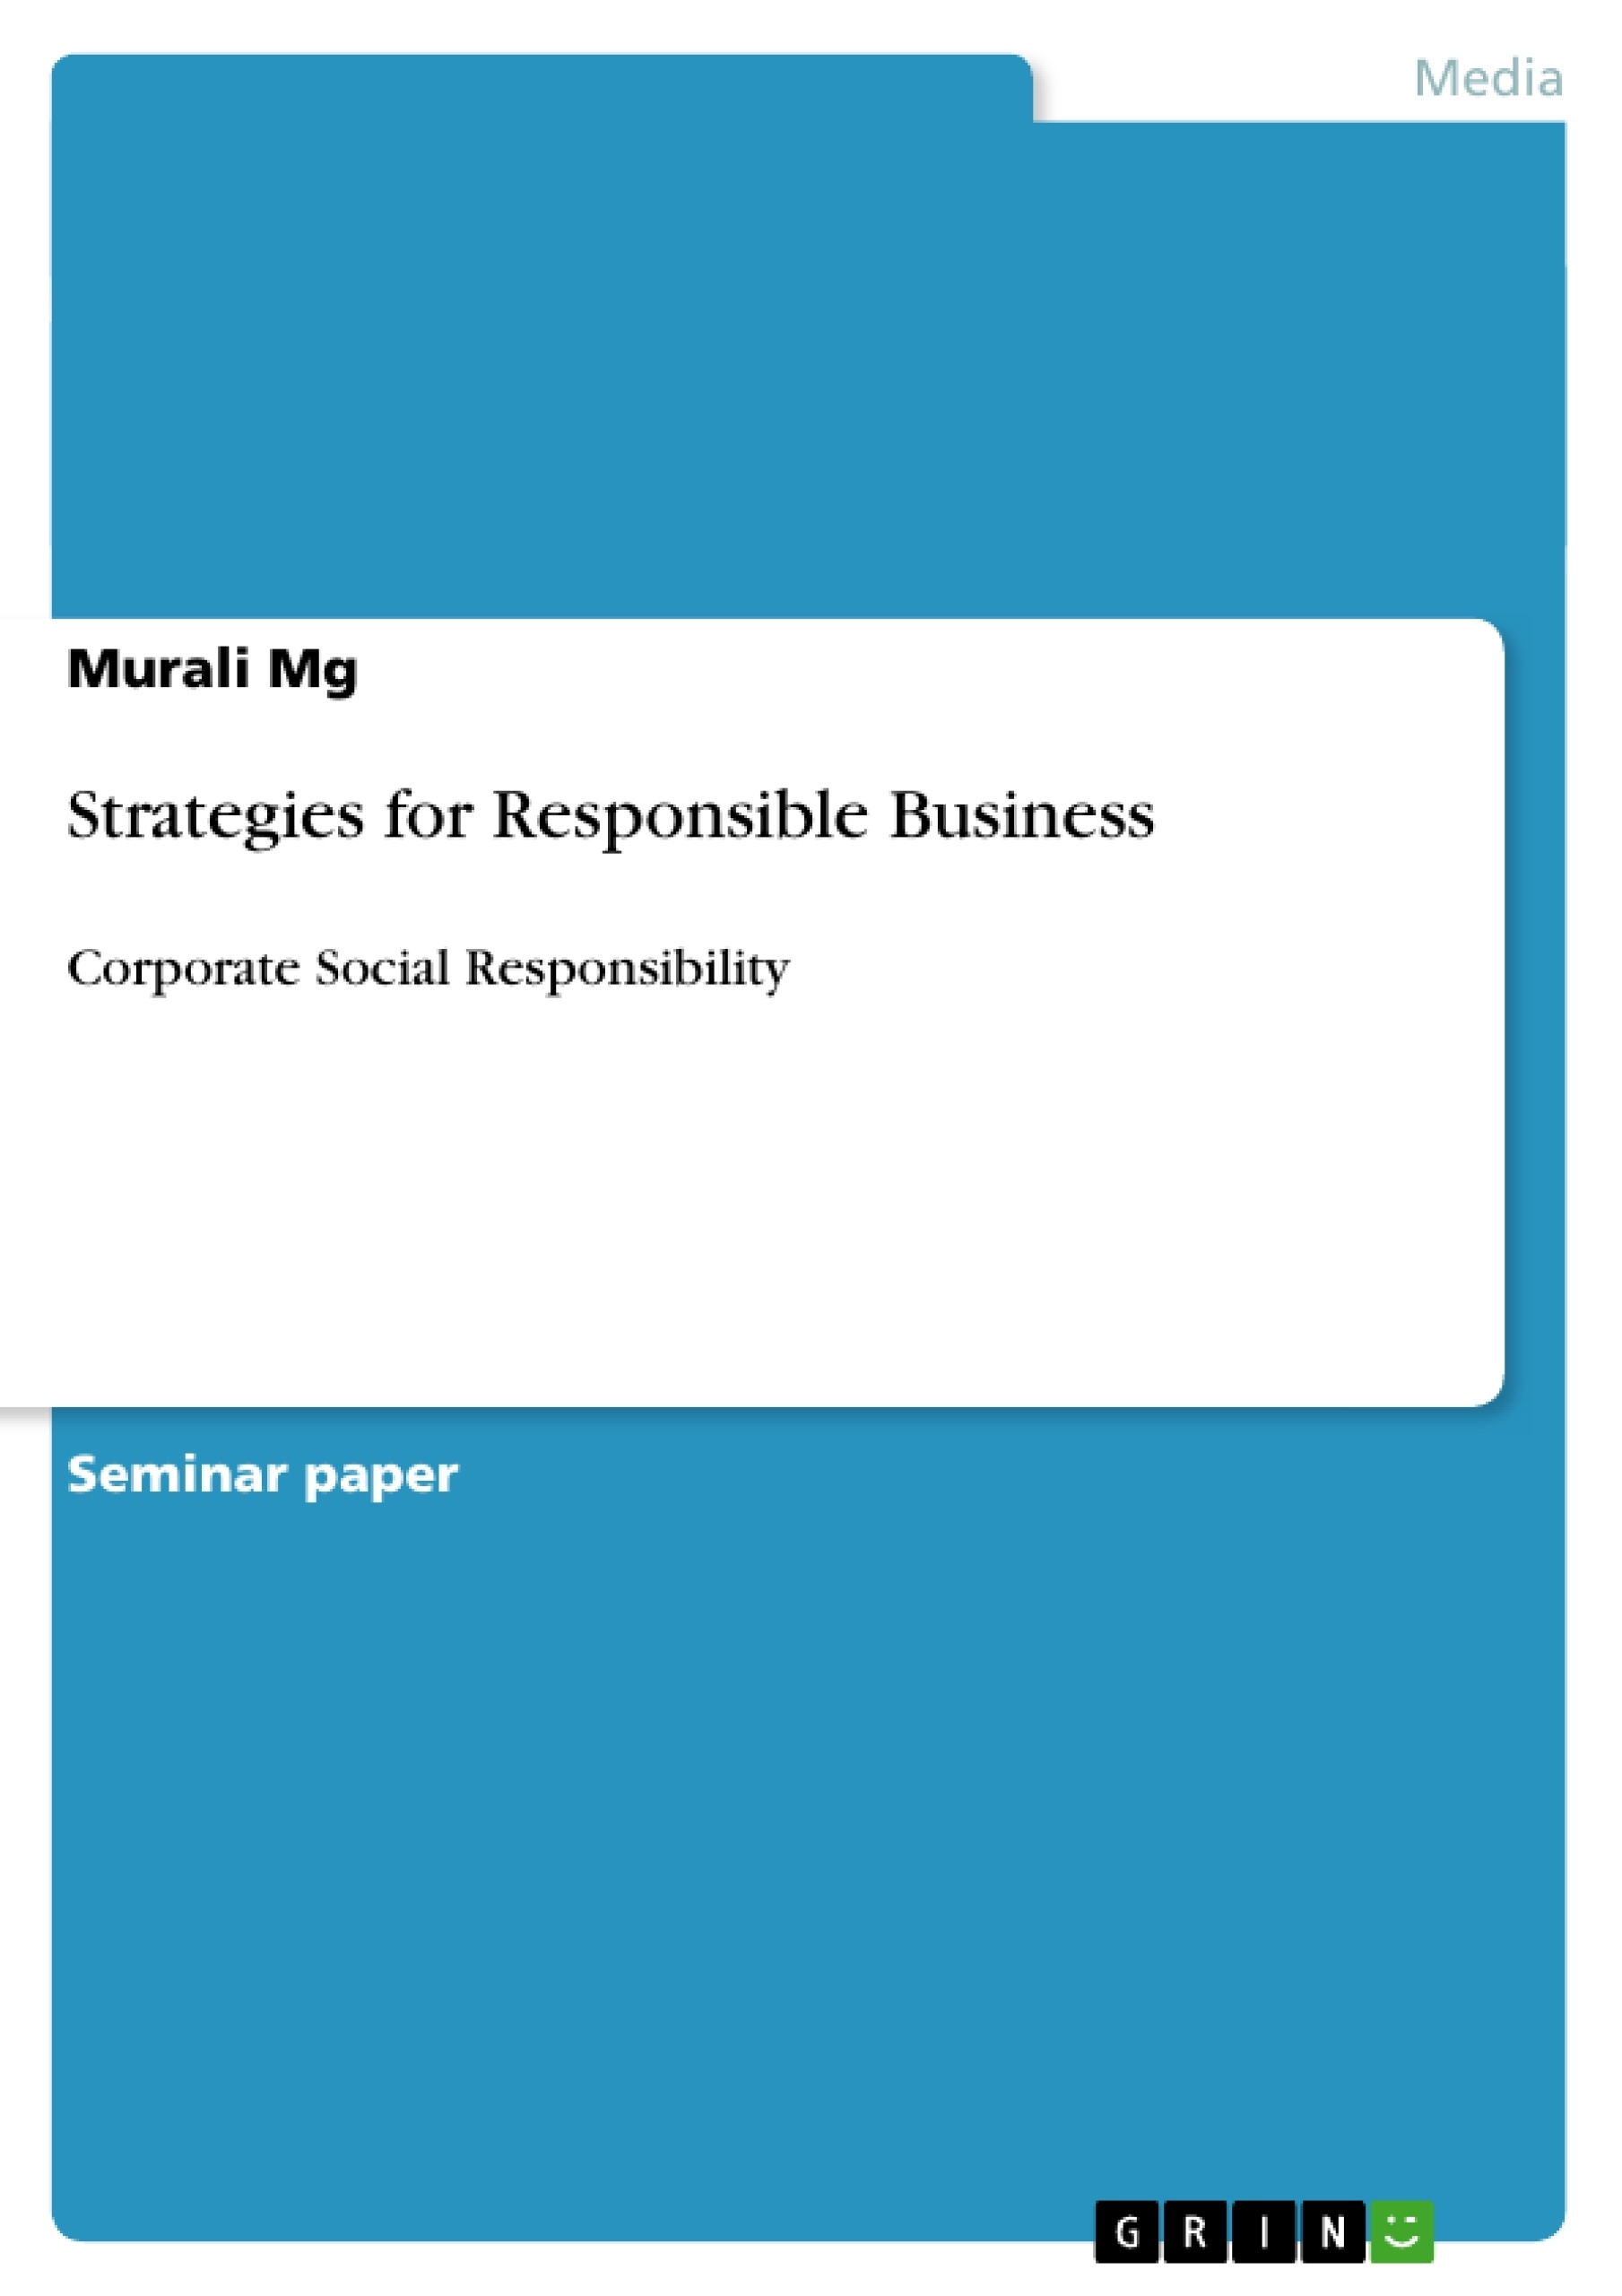 Title: Strategies for Responsible Business